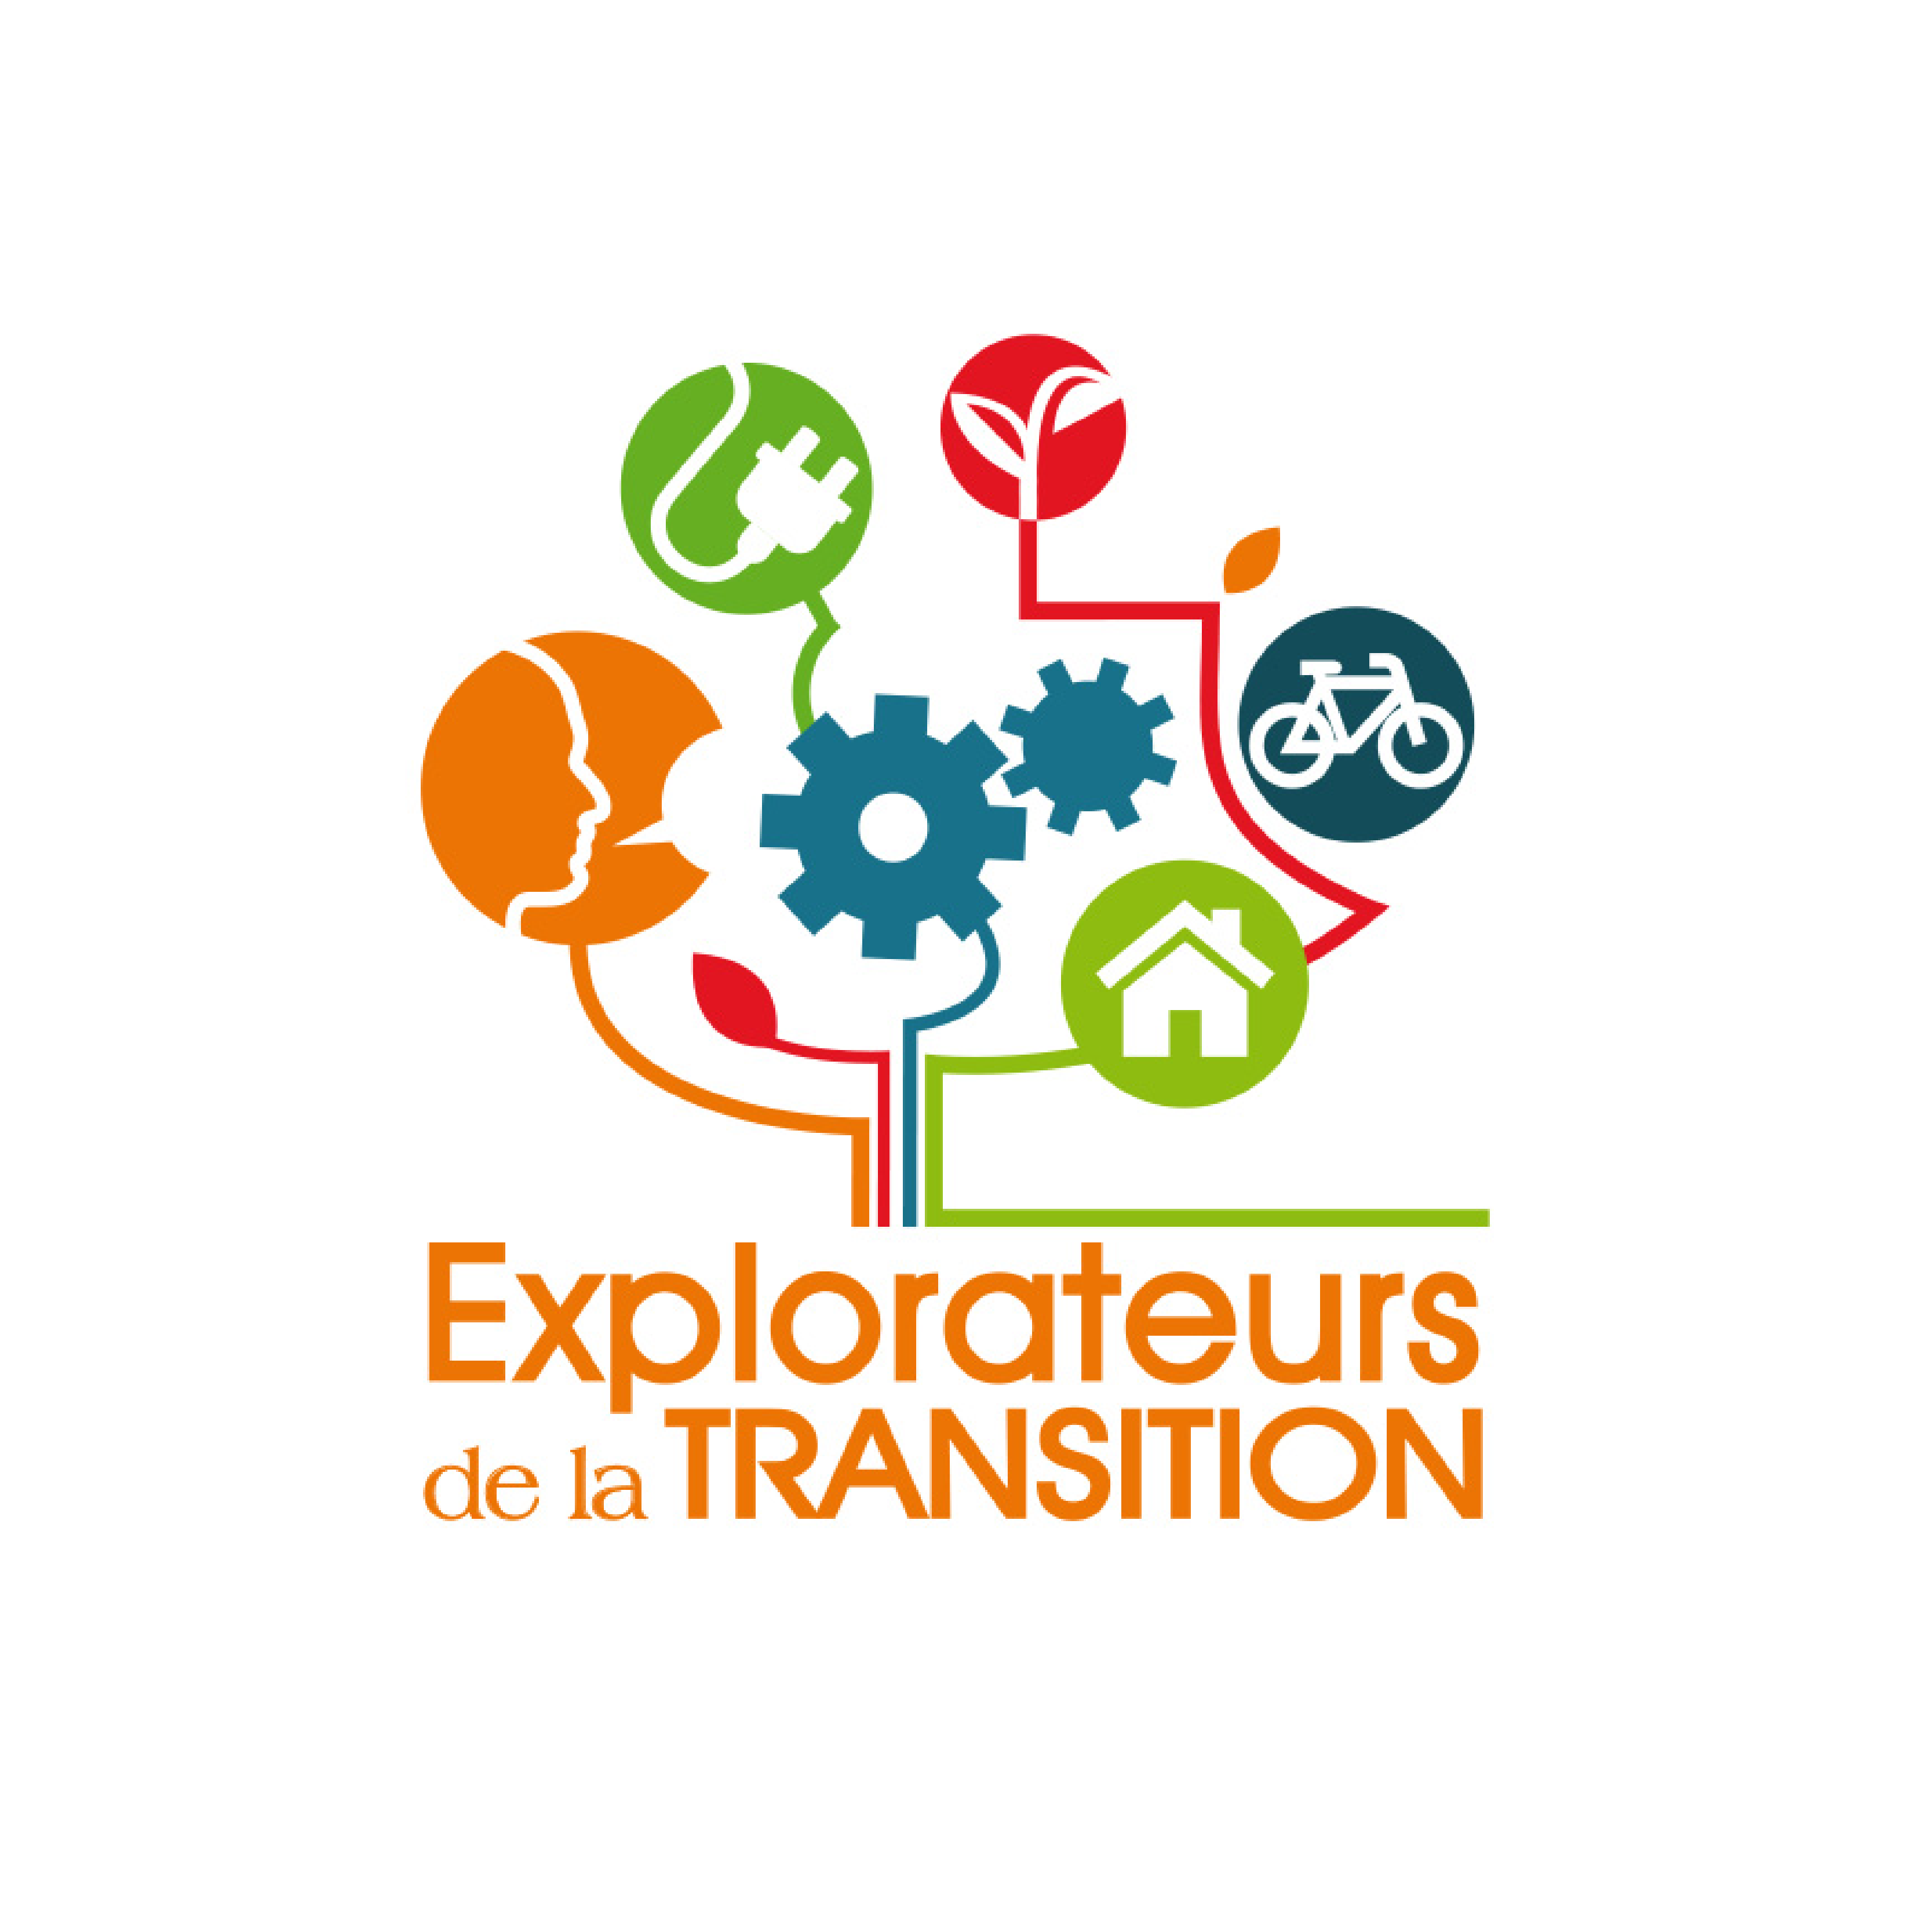 explorateurs de la transition_Plan de travail 1